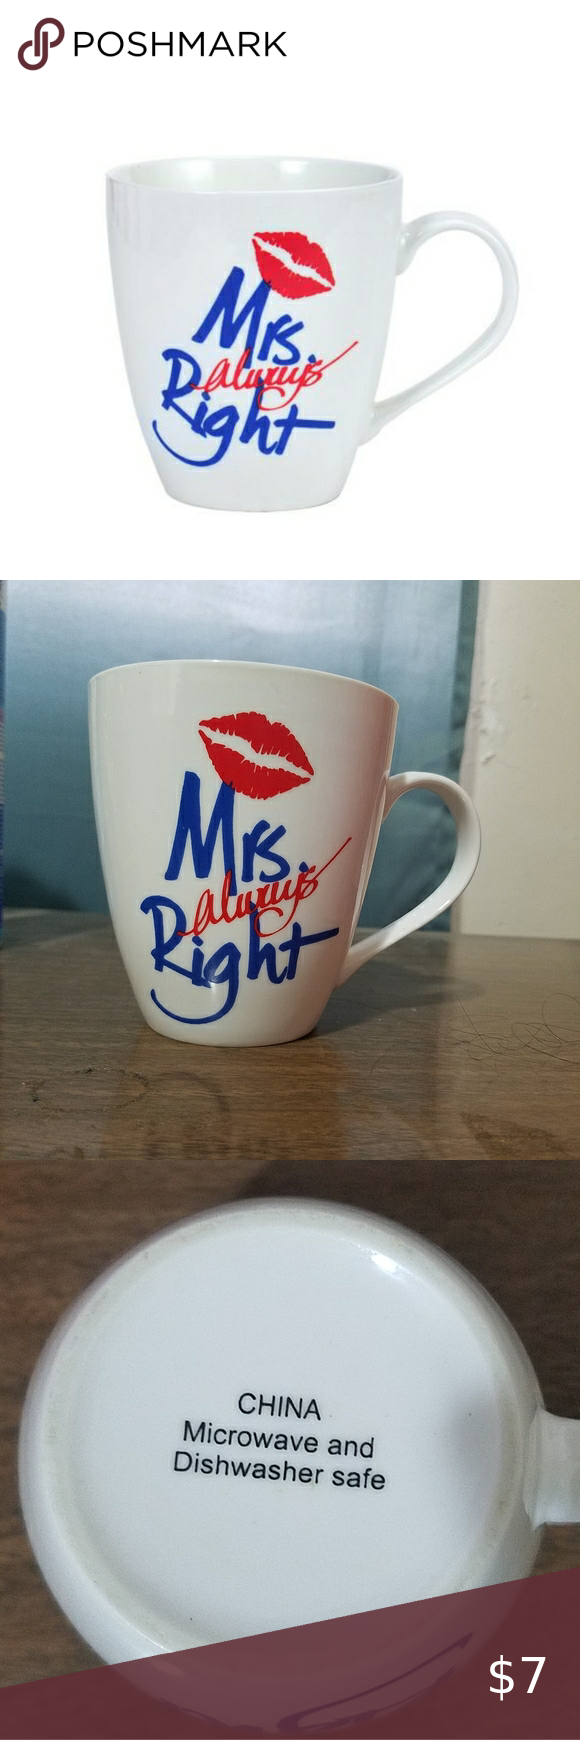 """Mrs. Always Right"" Coffee Mug in 2020 Mugs, Coffee and"